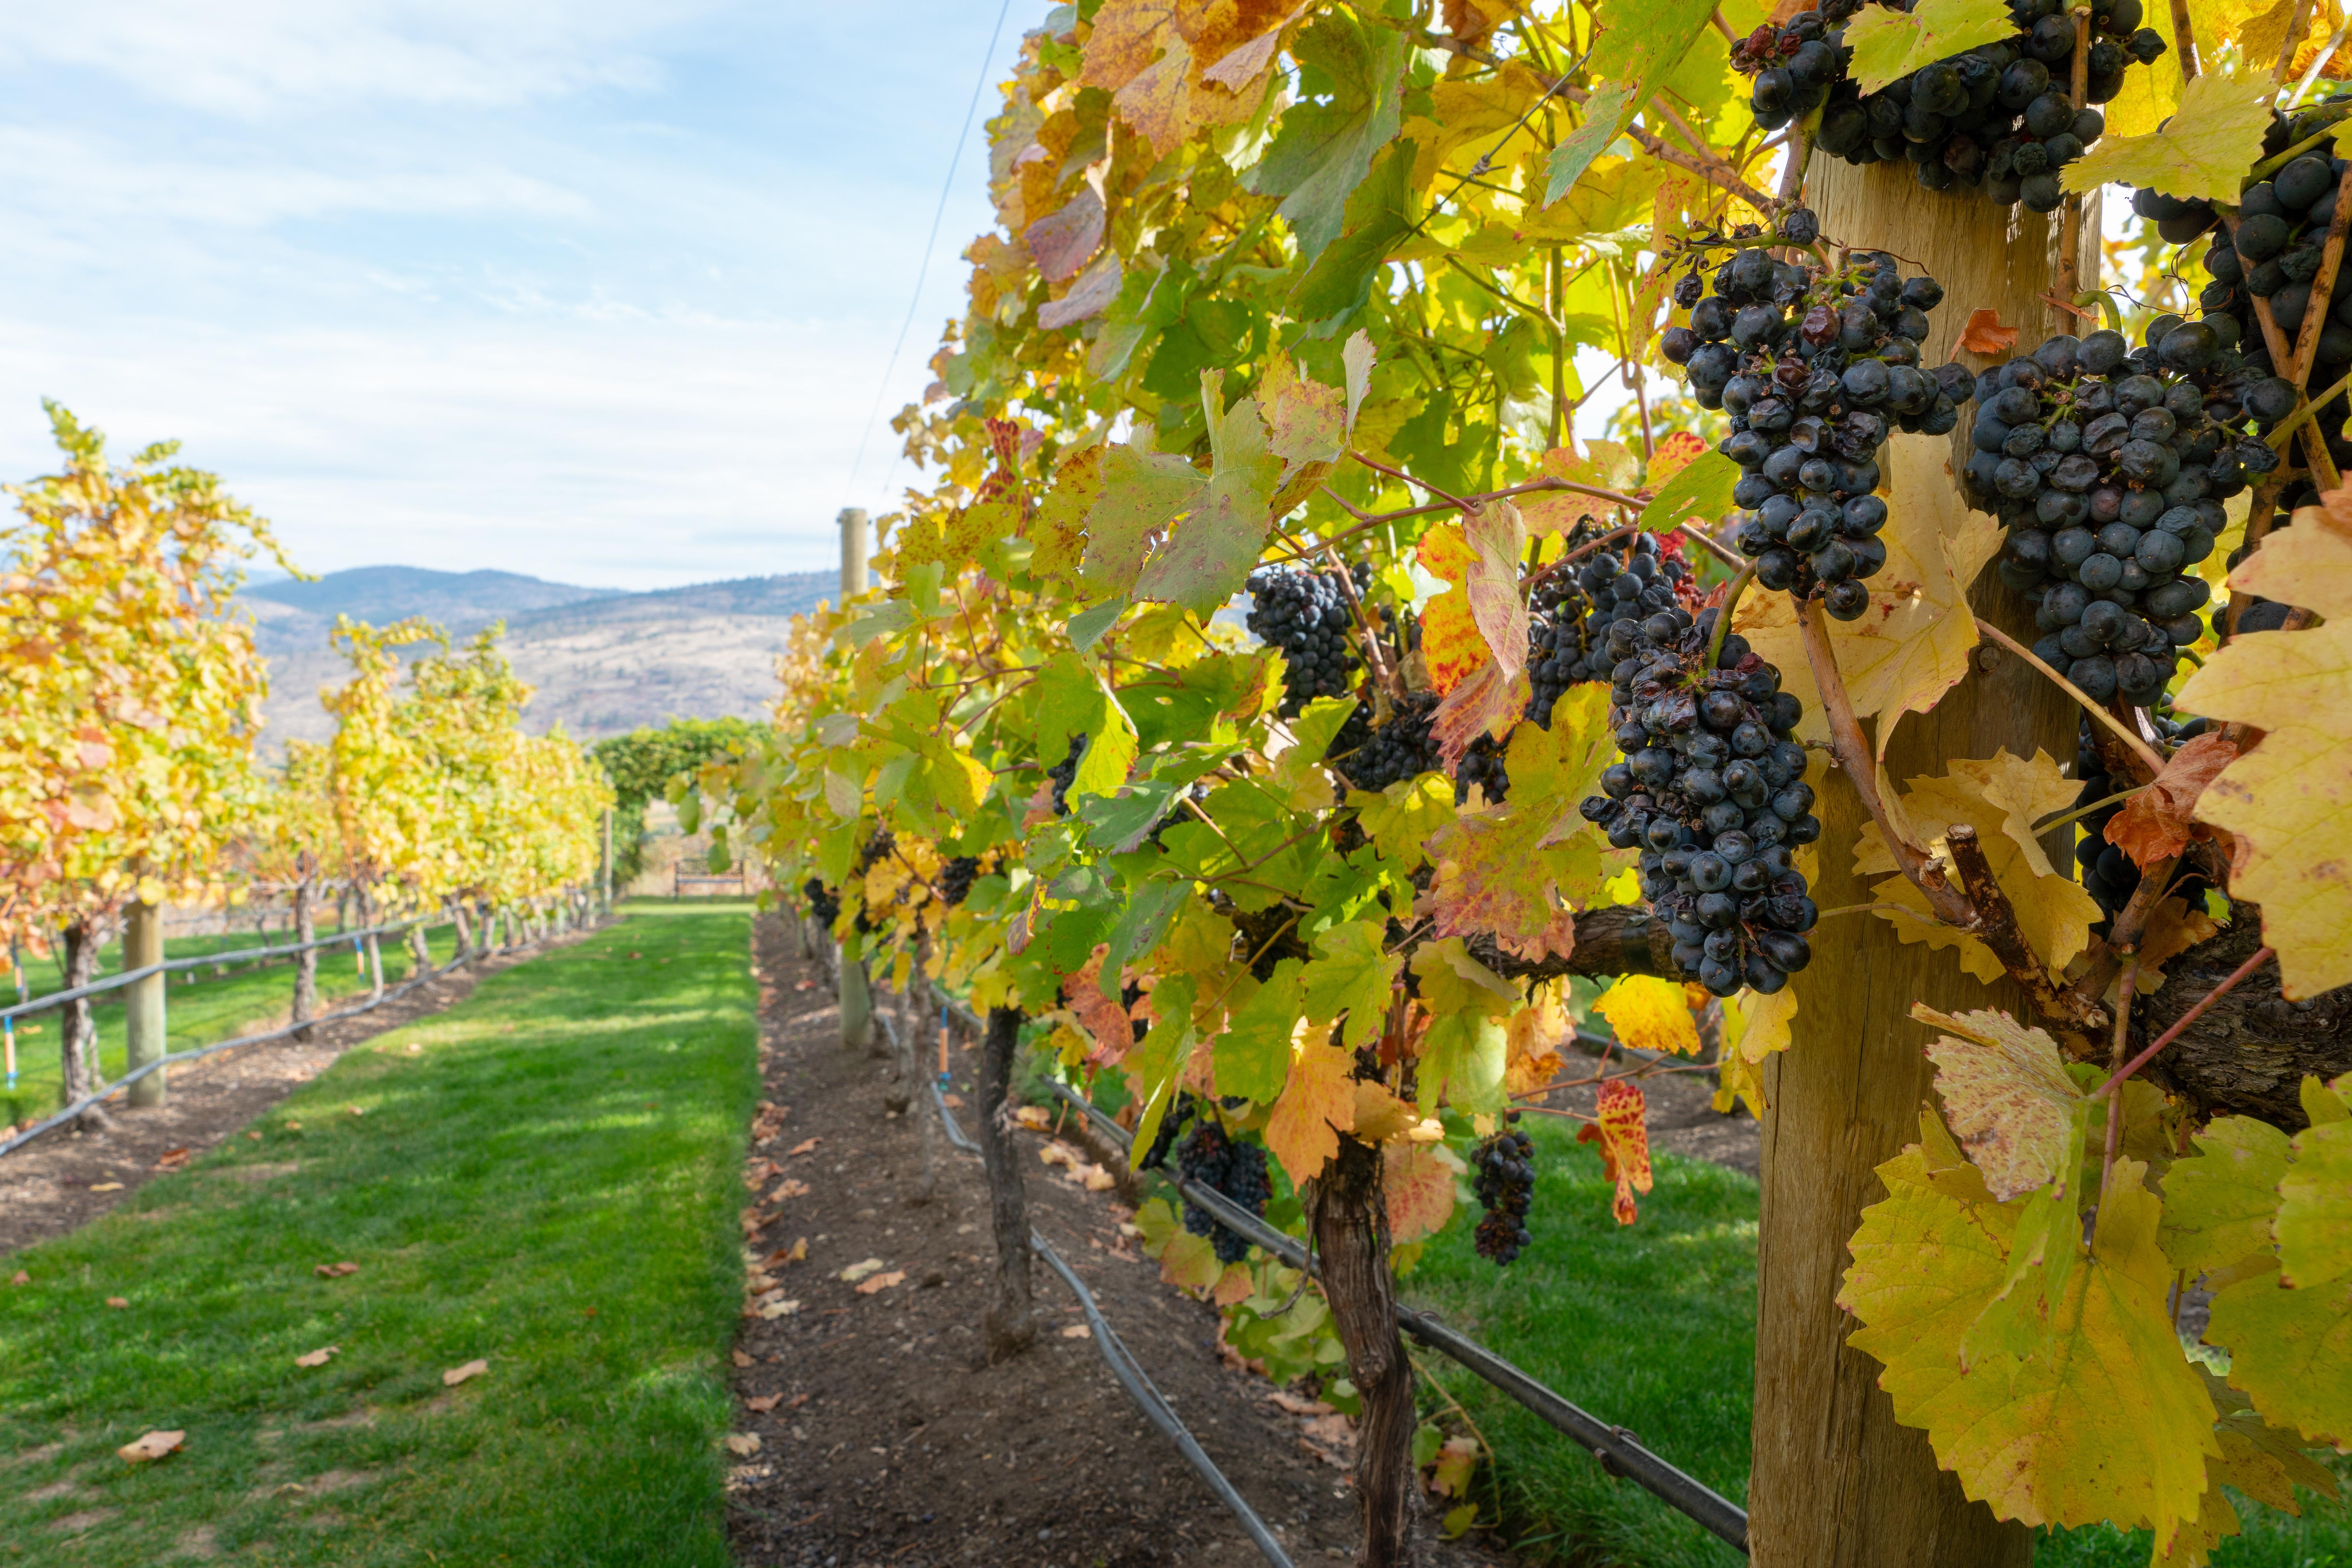 A vineyard in the fall in Osoyoos